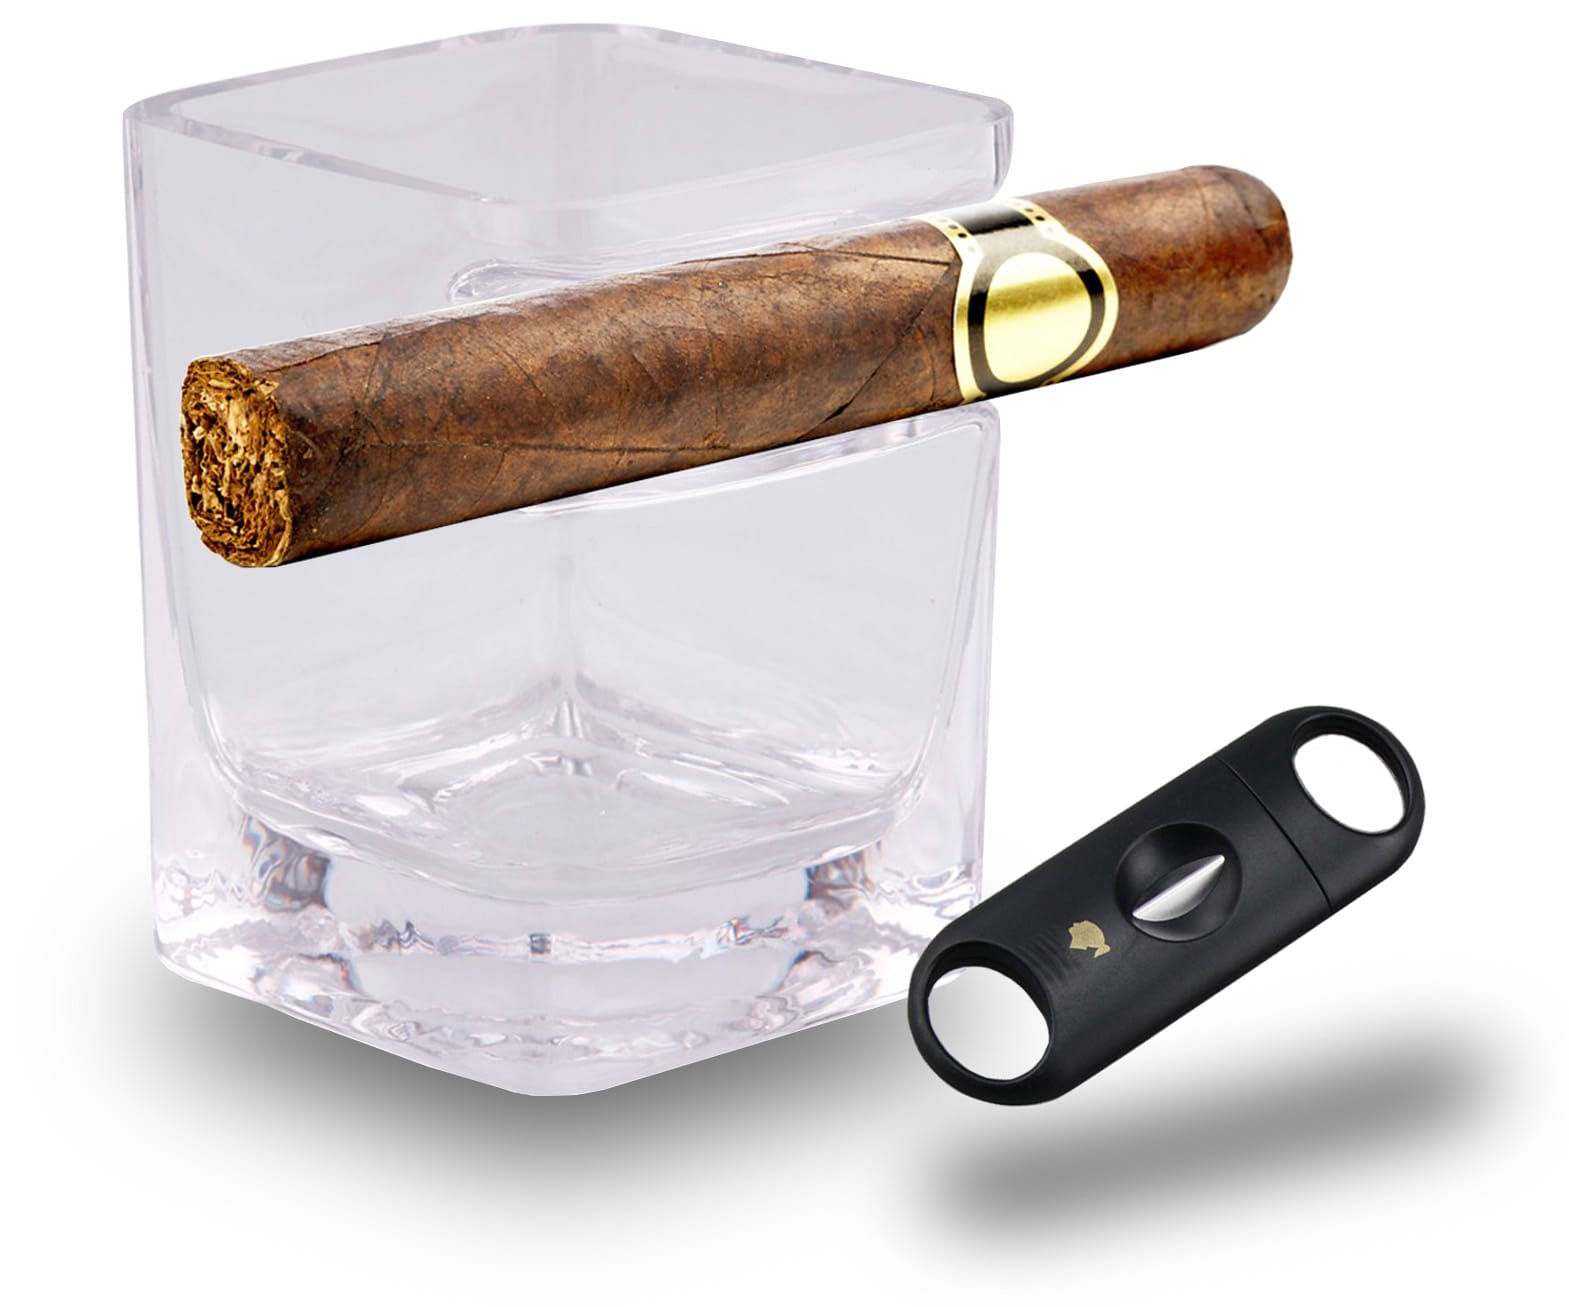 whiskey glass with cigar holder for whisky 300 ml V shaped cutter stainless steel